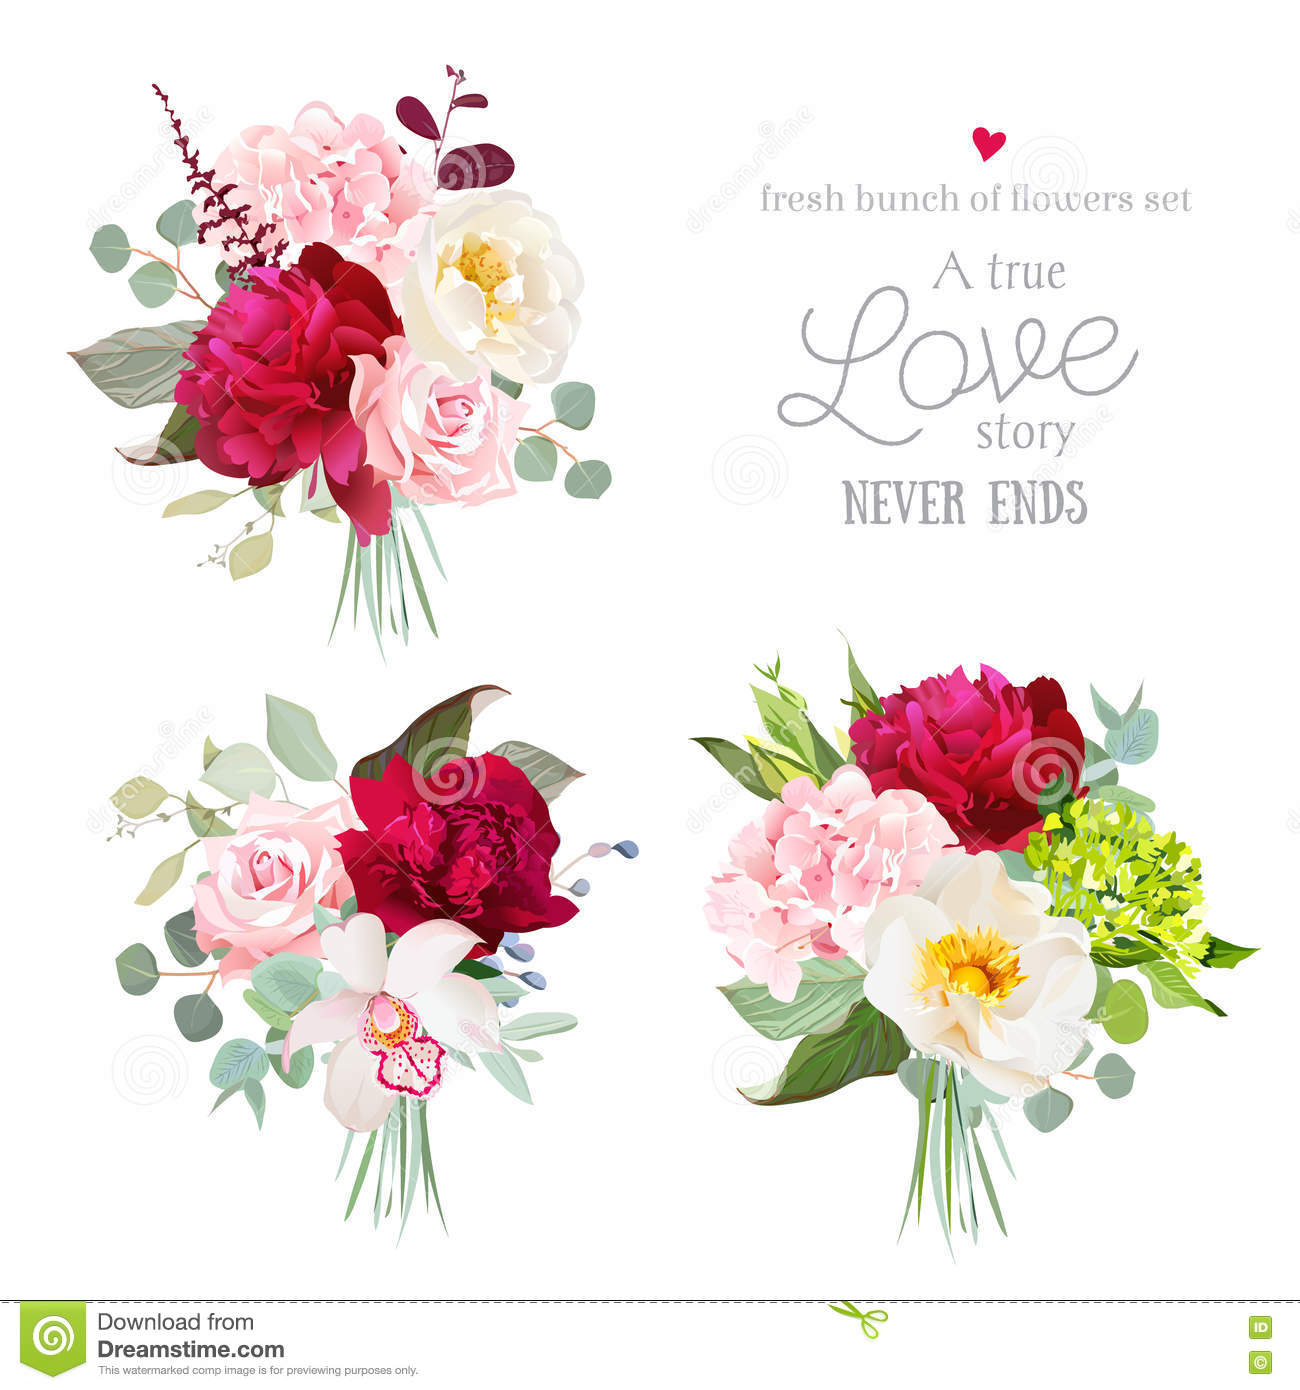 Surprise bouquets of rose, peony, green and pink hydrangea, orchid and eucalyptus leaves